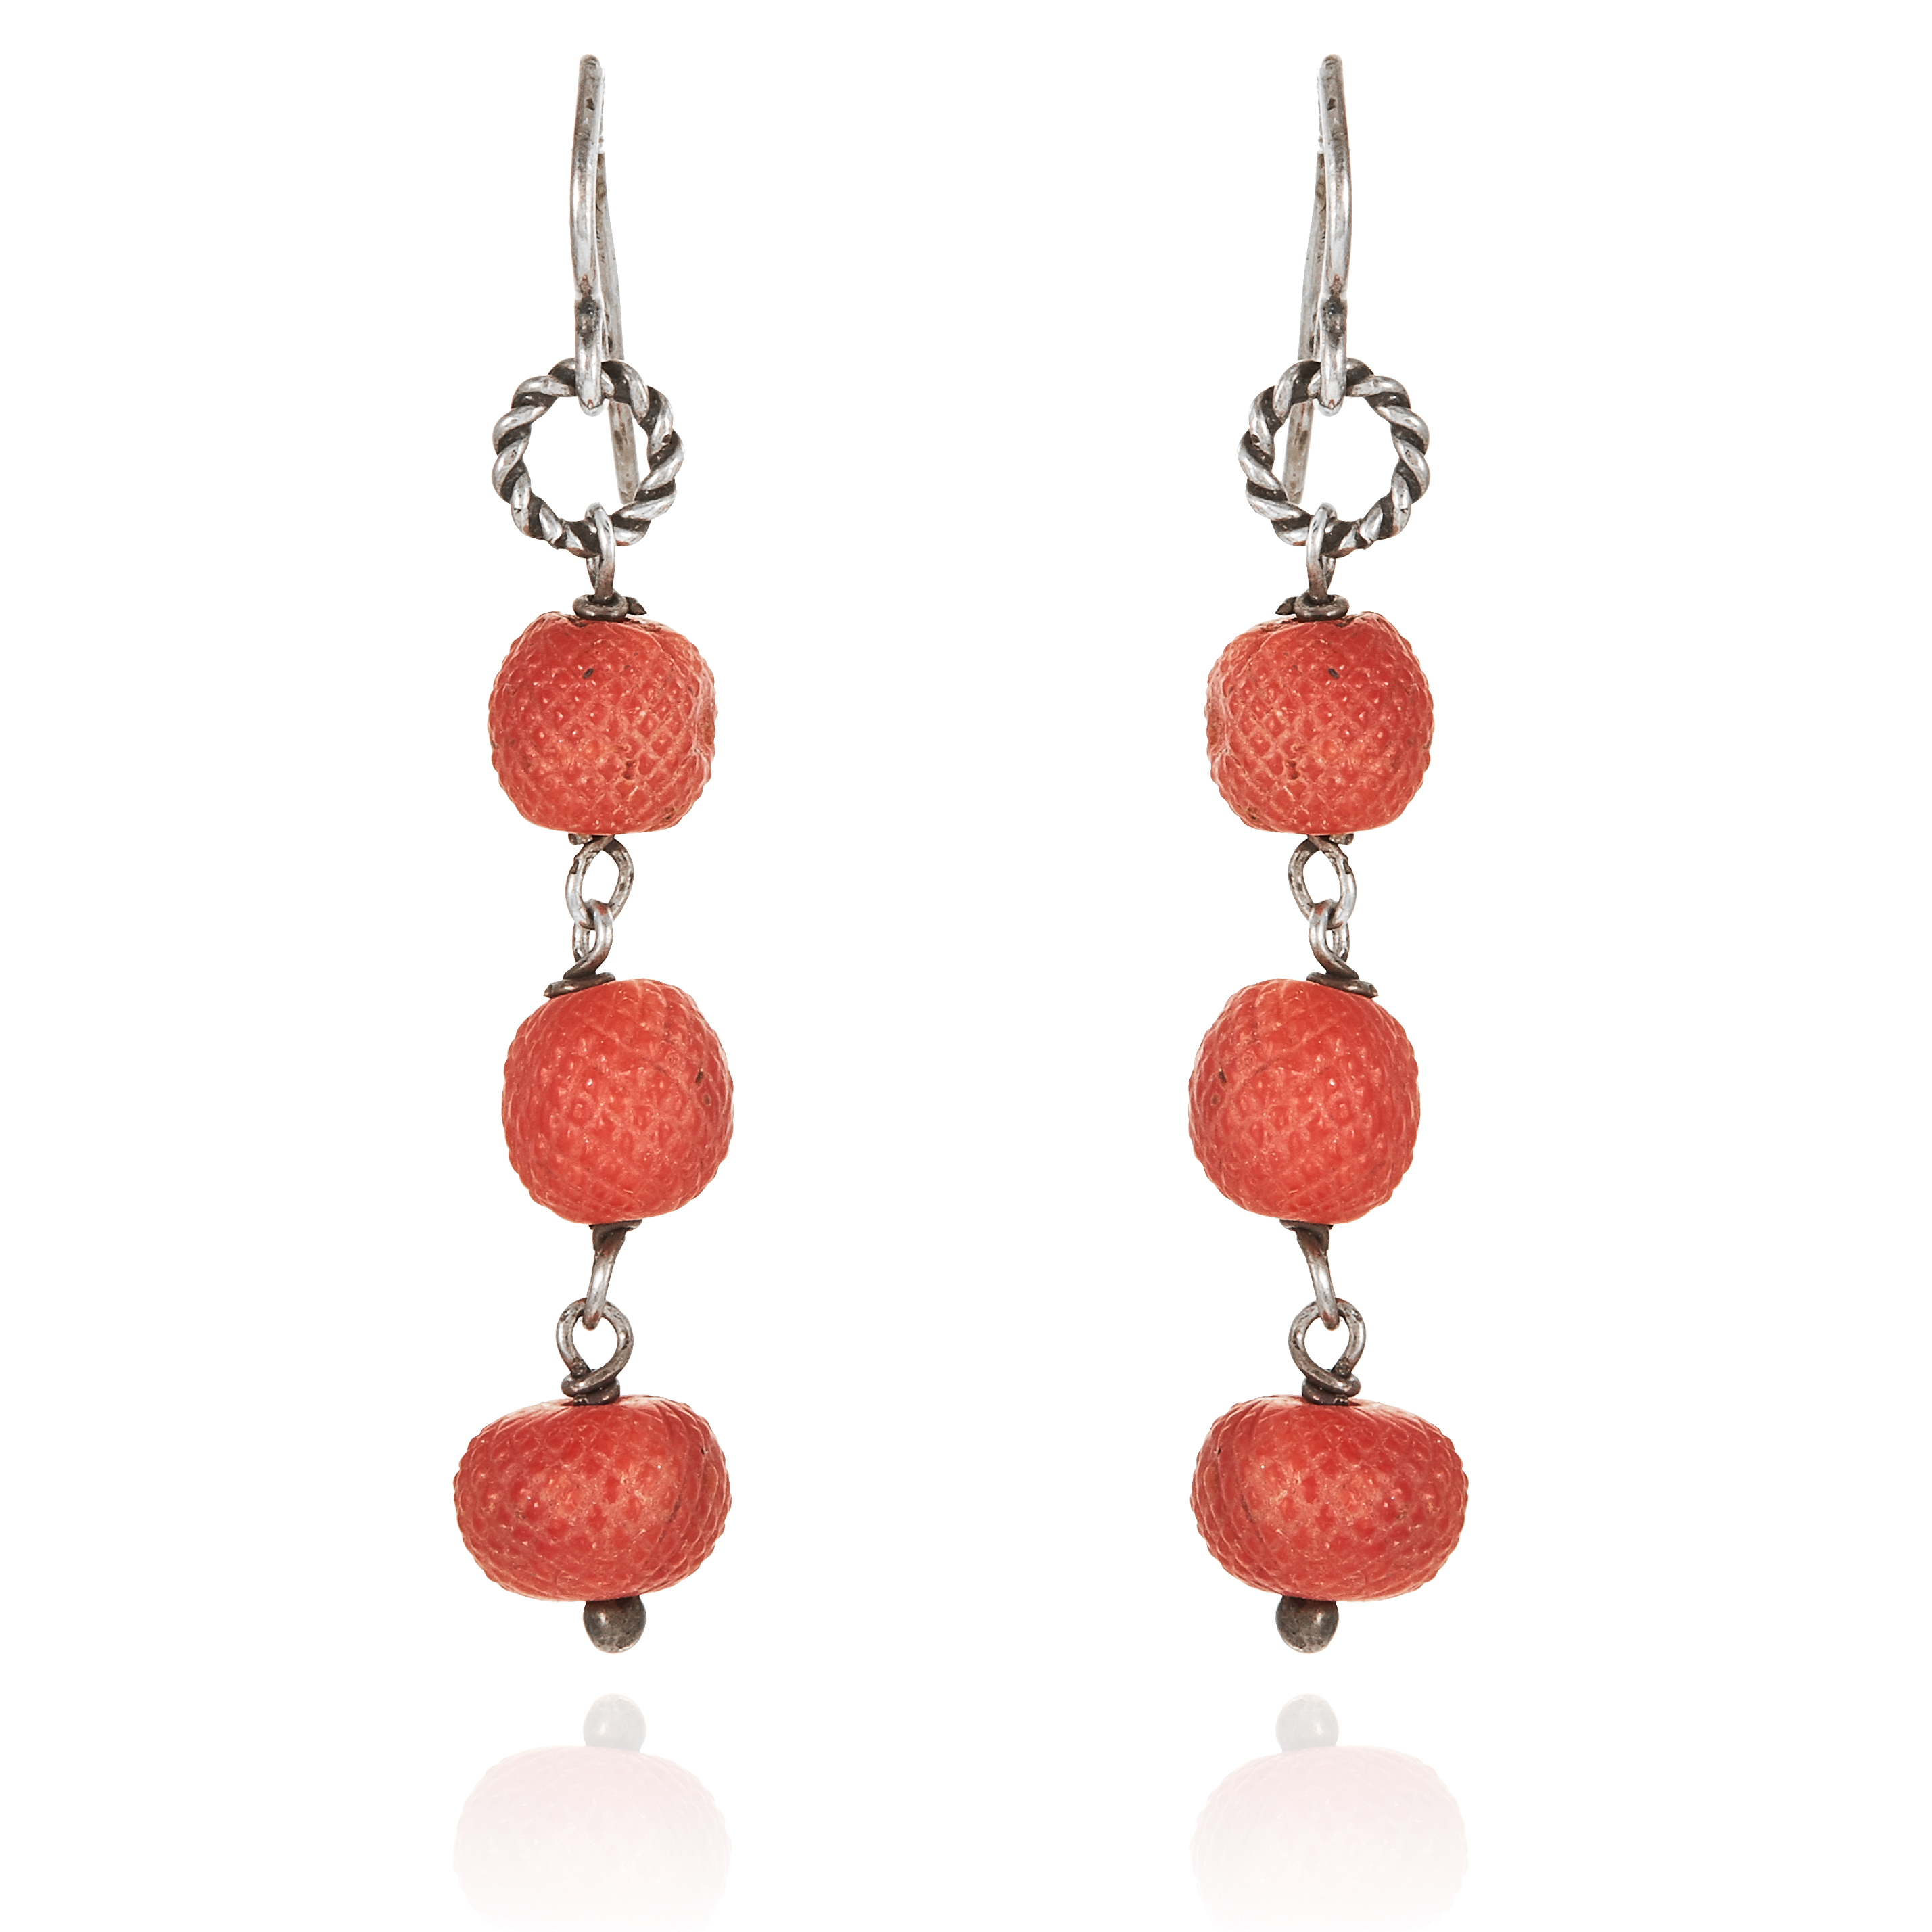 Los 9 - A PAIR OF ANTIQUE CARVED CORAL BEAD EARRINGS in sterling silver, each jewelled with three carved